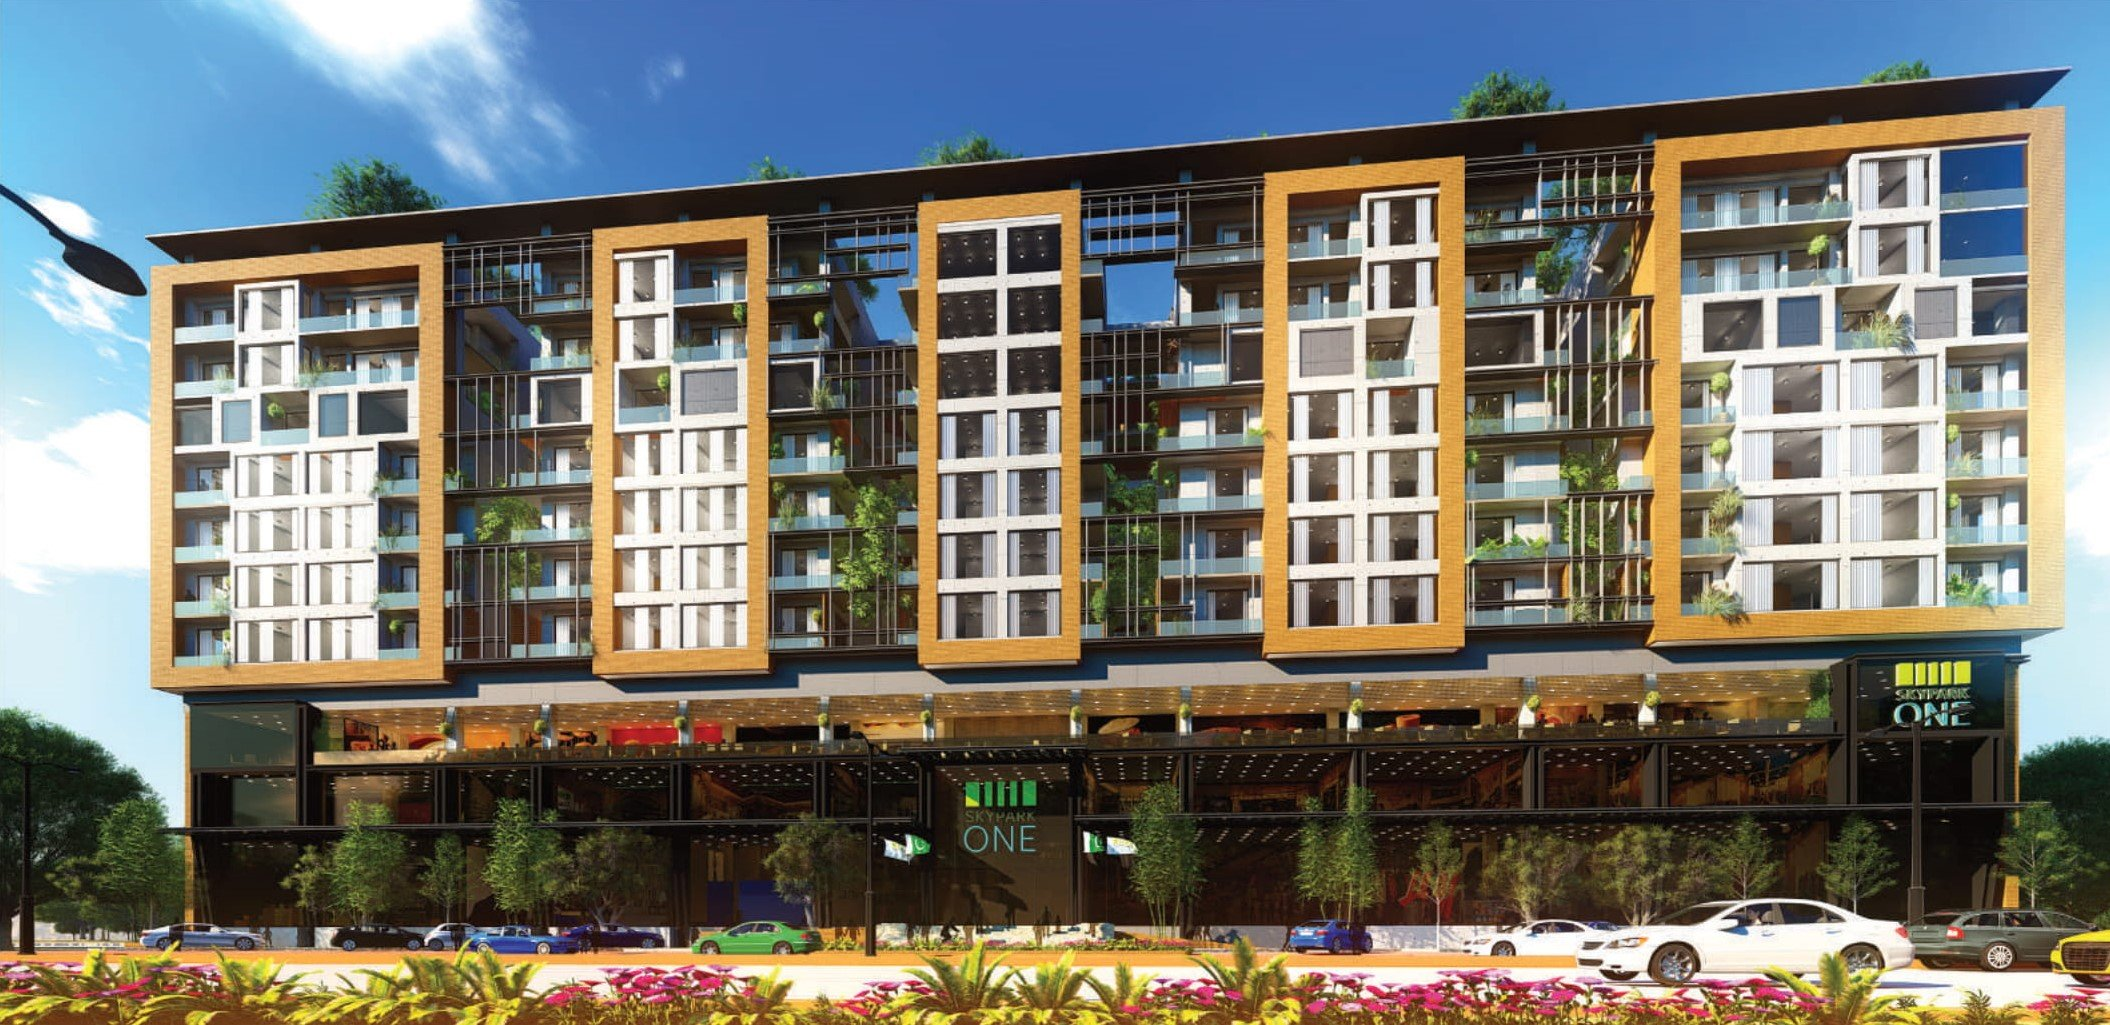 Skypark One - Gulberg Greens-front view